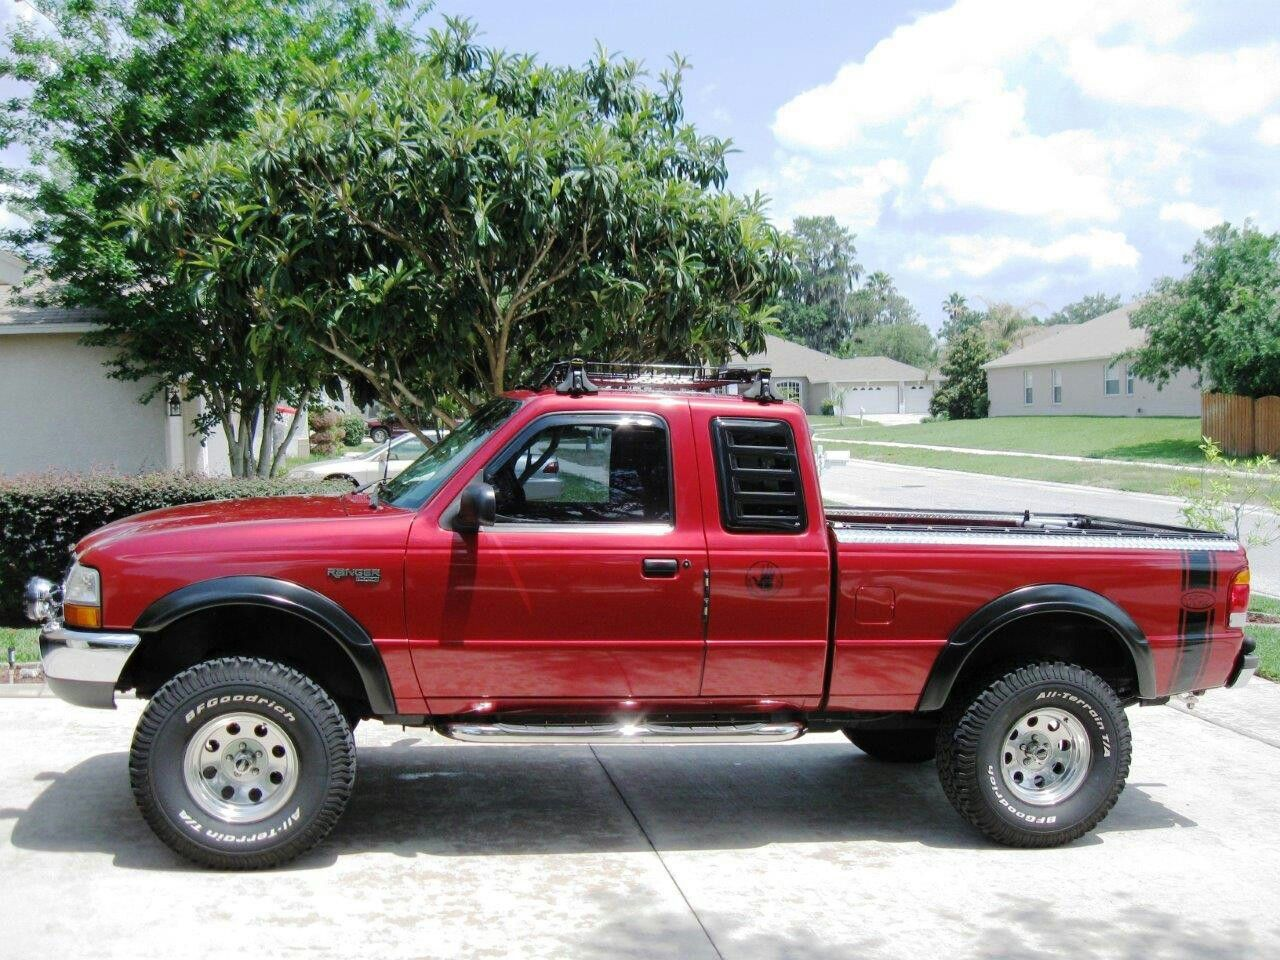 My 99 Ford Ranger 5 Inch Lift Ar 8 15 Alloy Rims With Bf Goodrich At 33 12 5 15 Tires Rancho 5000 Series Shocks With Ranc Ford Ranger Ranger 4x4 Mini Trucks